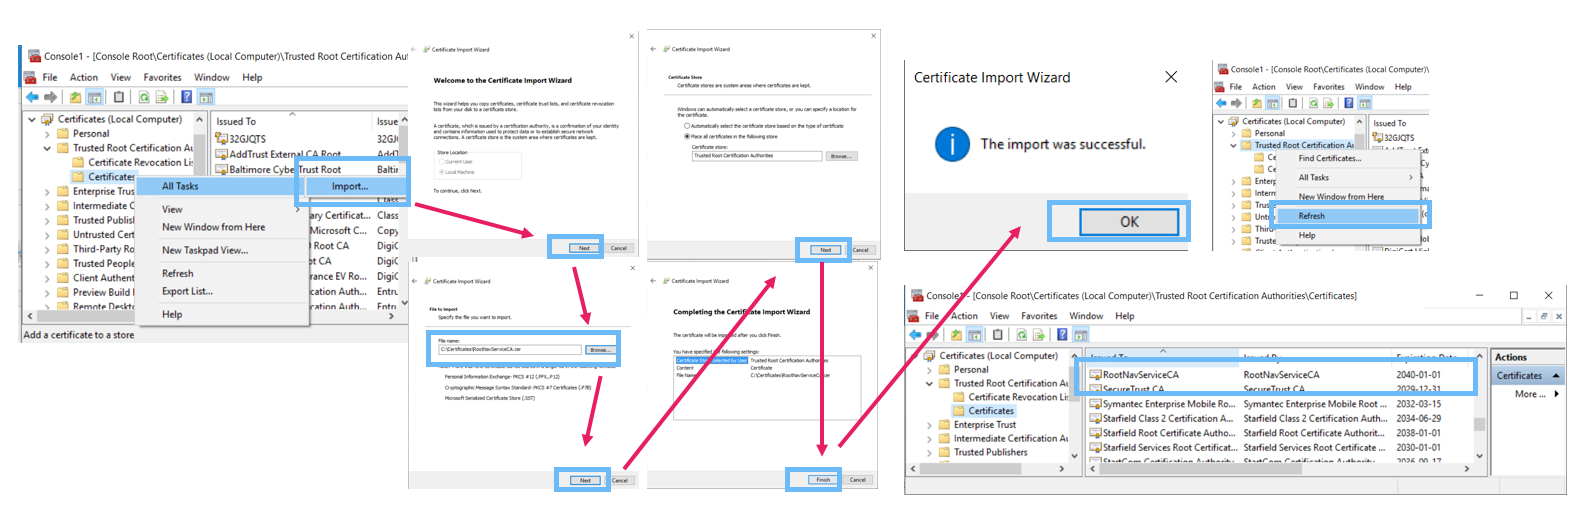 Implement security certificate in dynamics nav 2016 create a certificate revocation list for the root certification authority and install it 1betcityfo Gallery